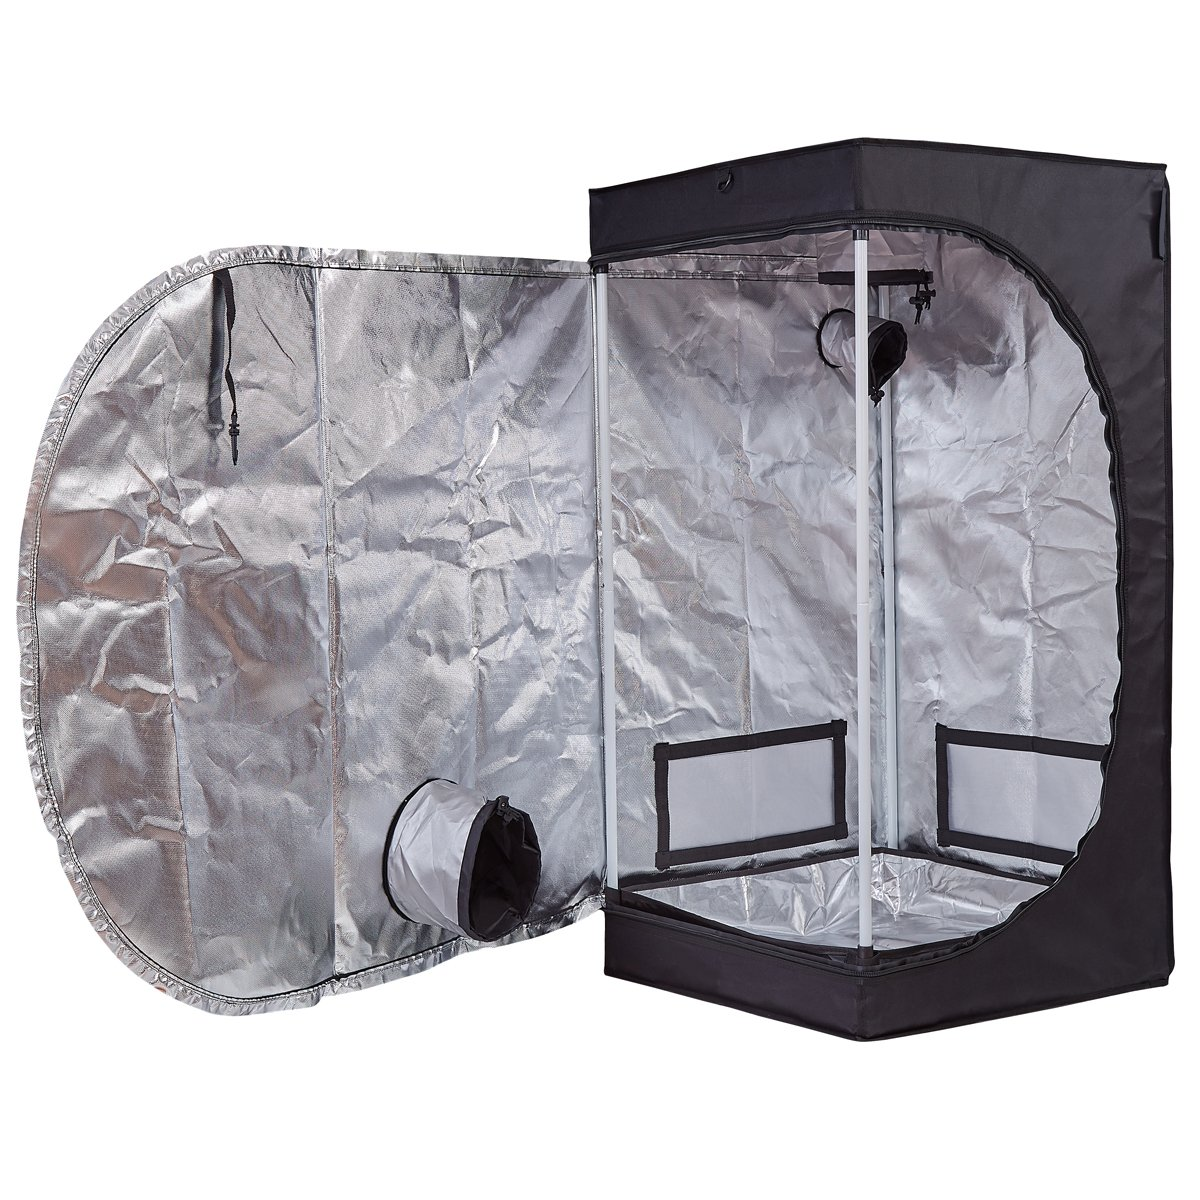 BloomGrow 24 x24 x48 600D Mylar Hydroponic Water-Resistant Grow Tent with Plastic Corner Removable Floor Tray for Indoor Plant Growing 24 x24 x48